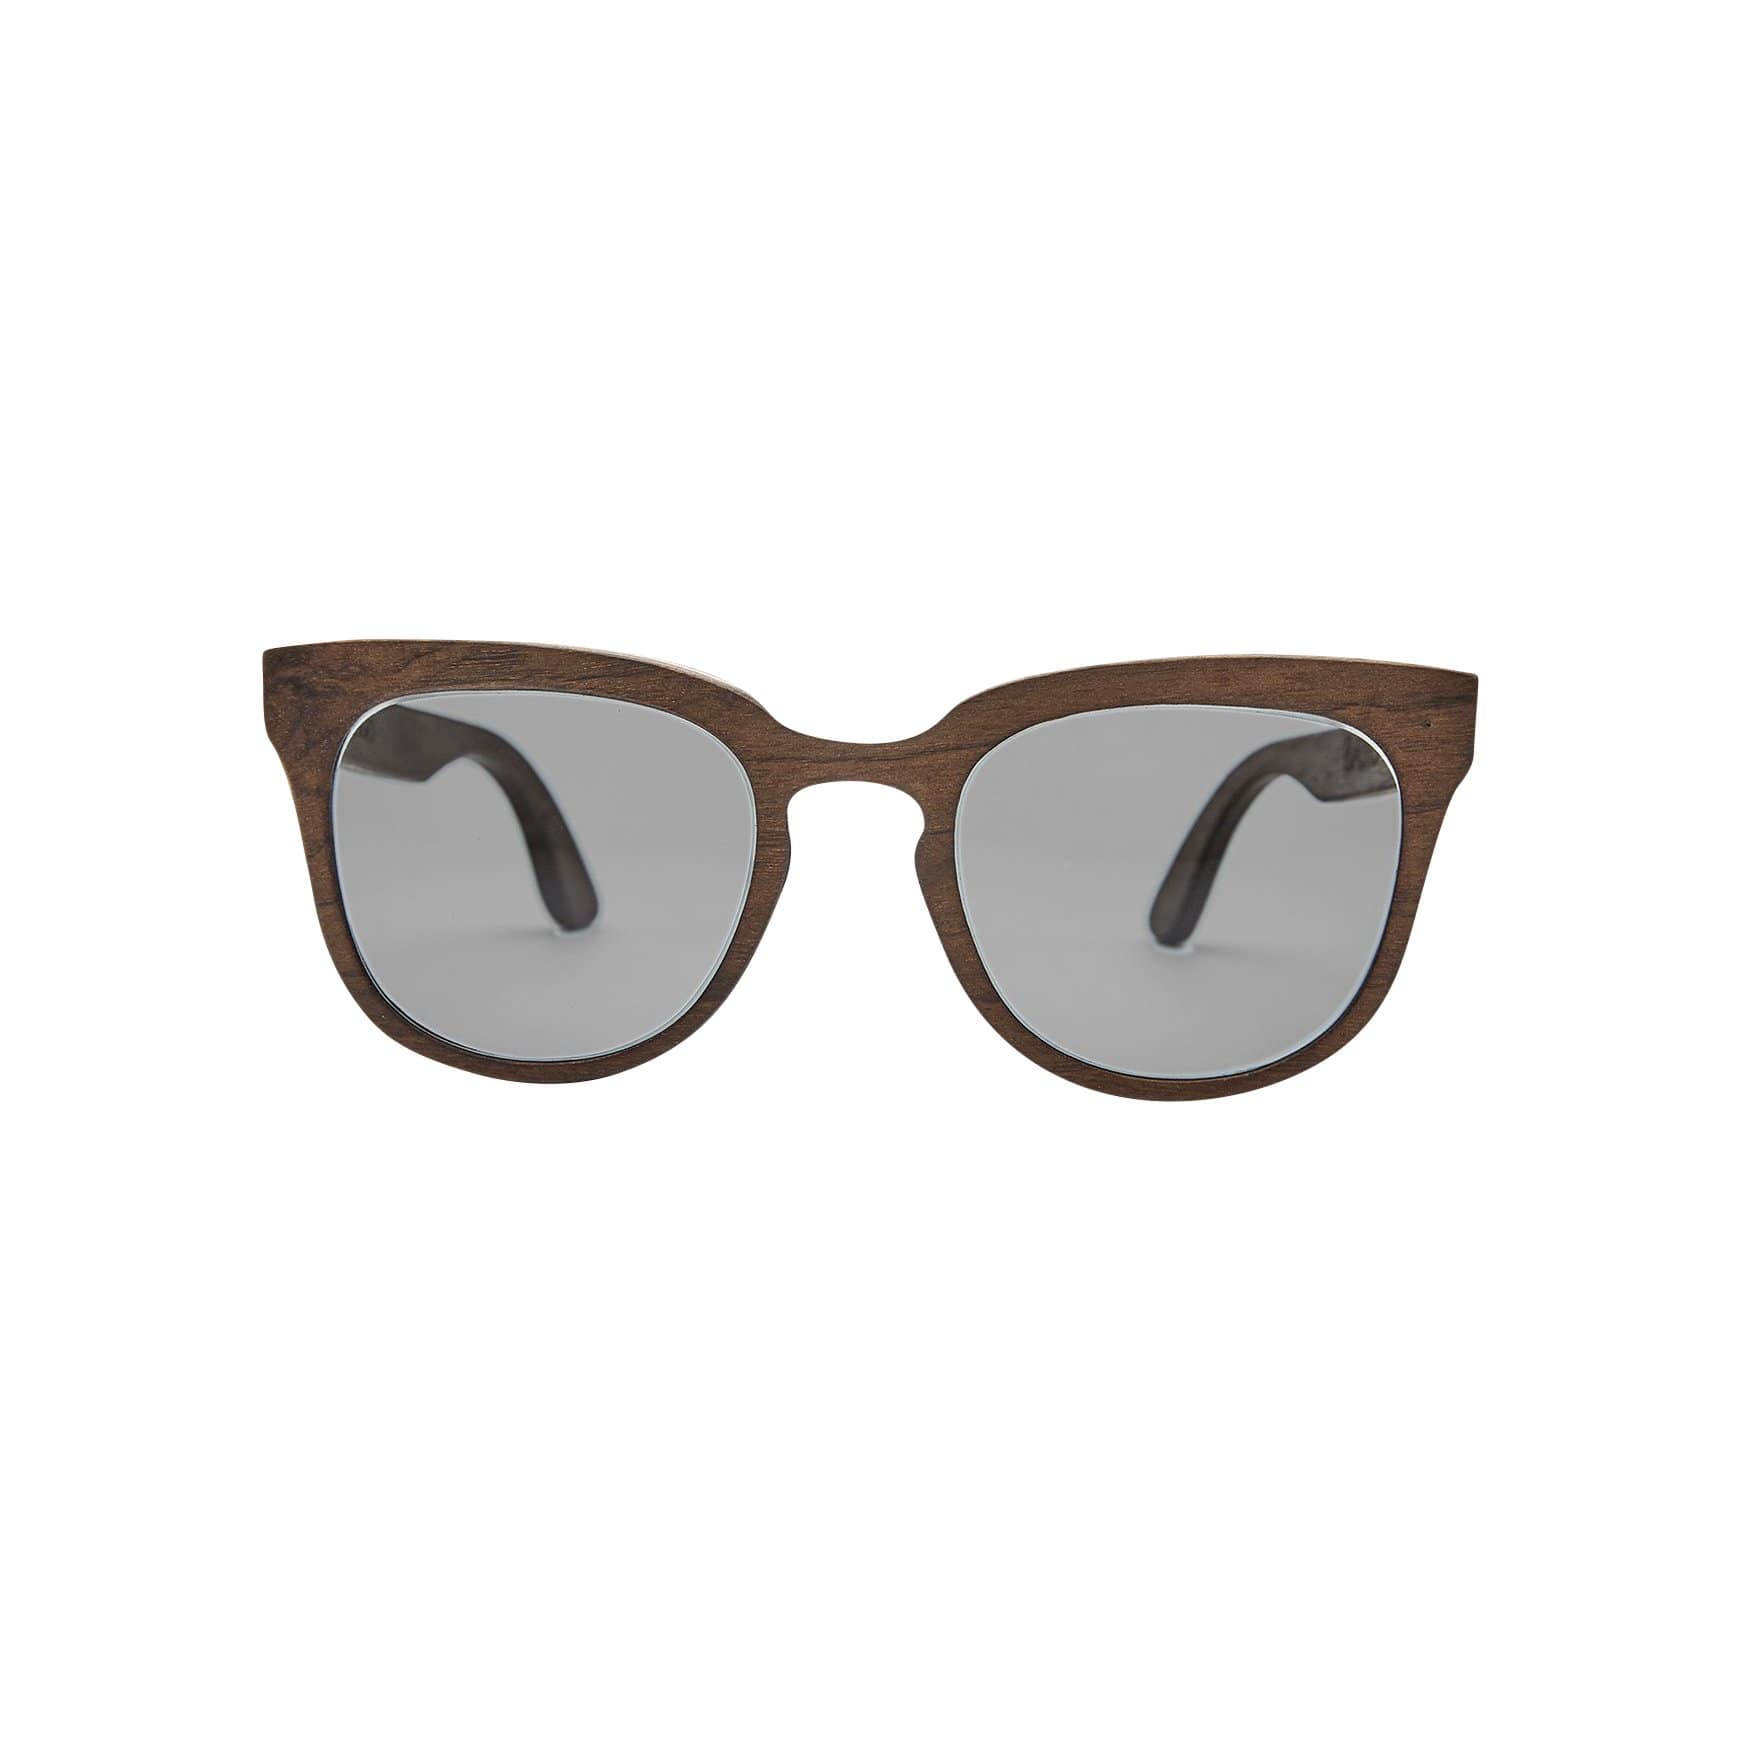 Ballo Sunglasses + Eyewear Mungo with Imbuia Wood